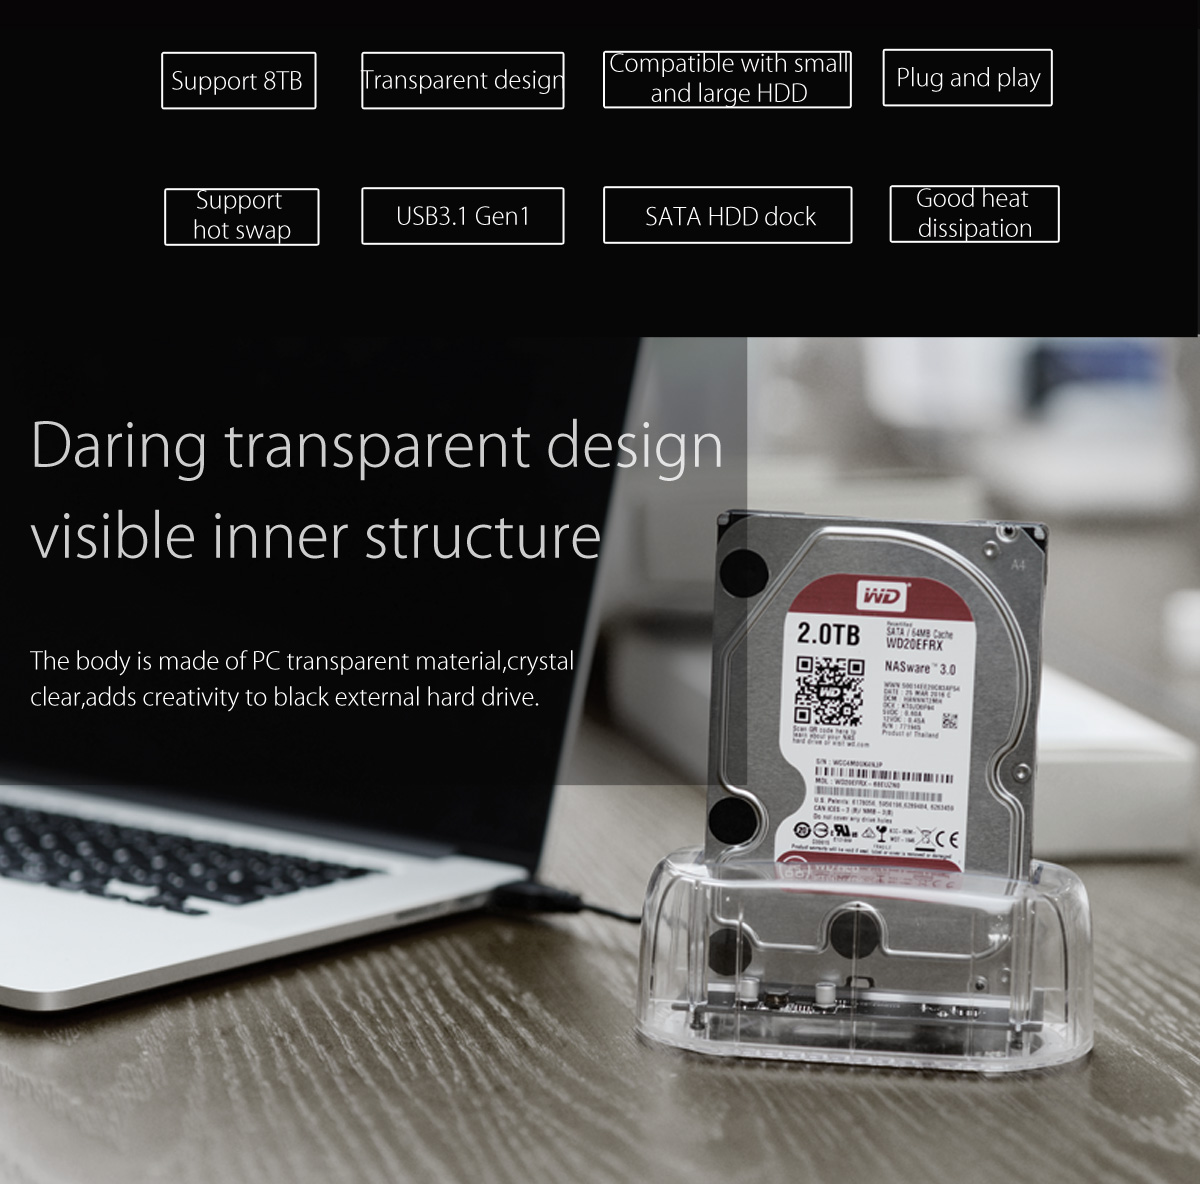 the hard drive dock made of transparent PC material, visible inner structure